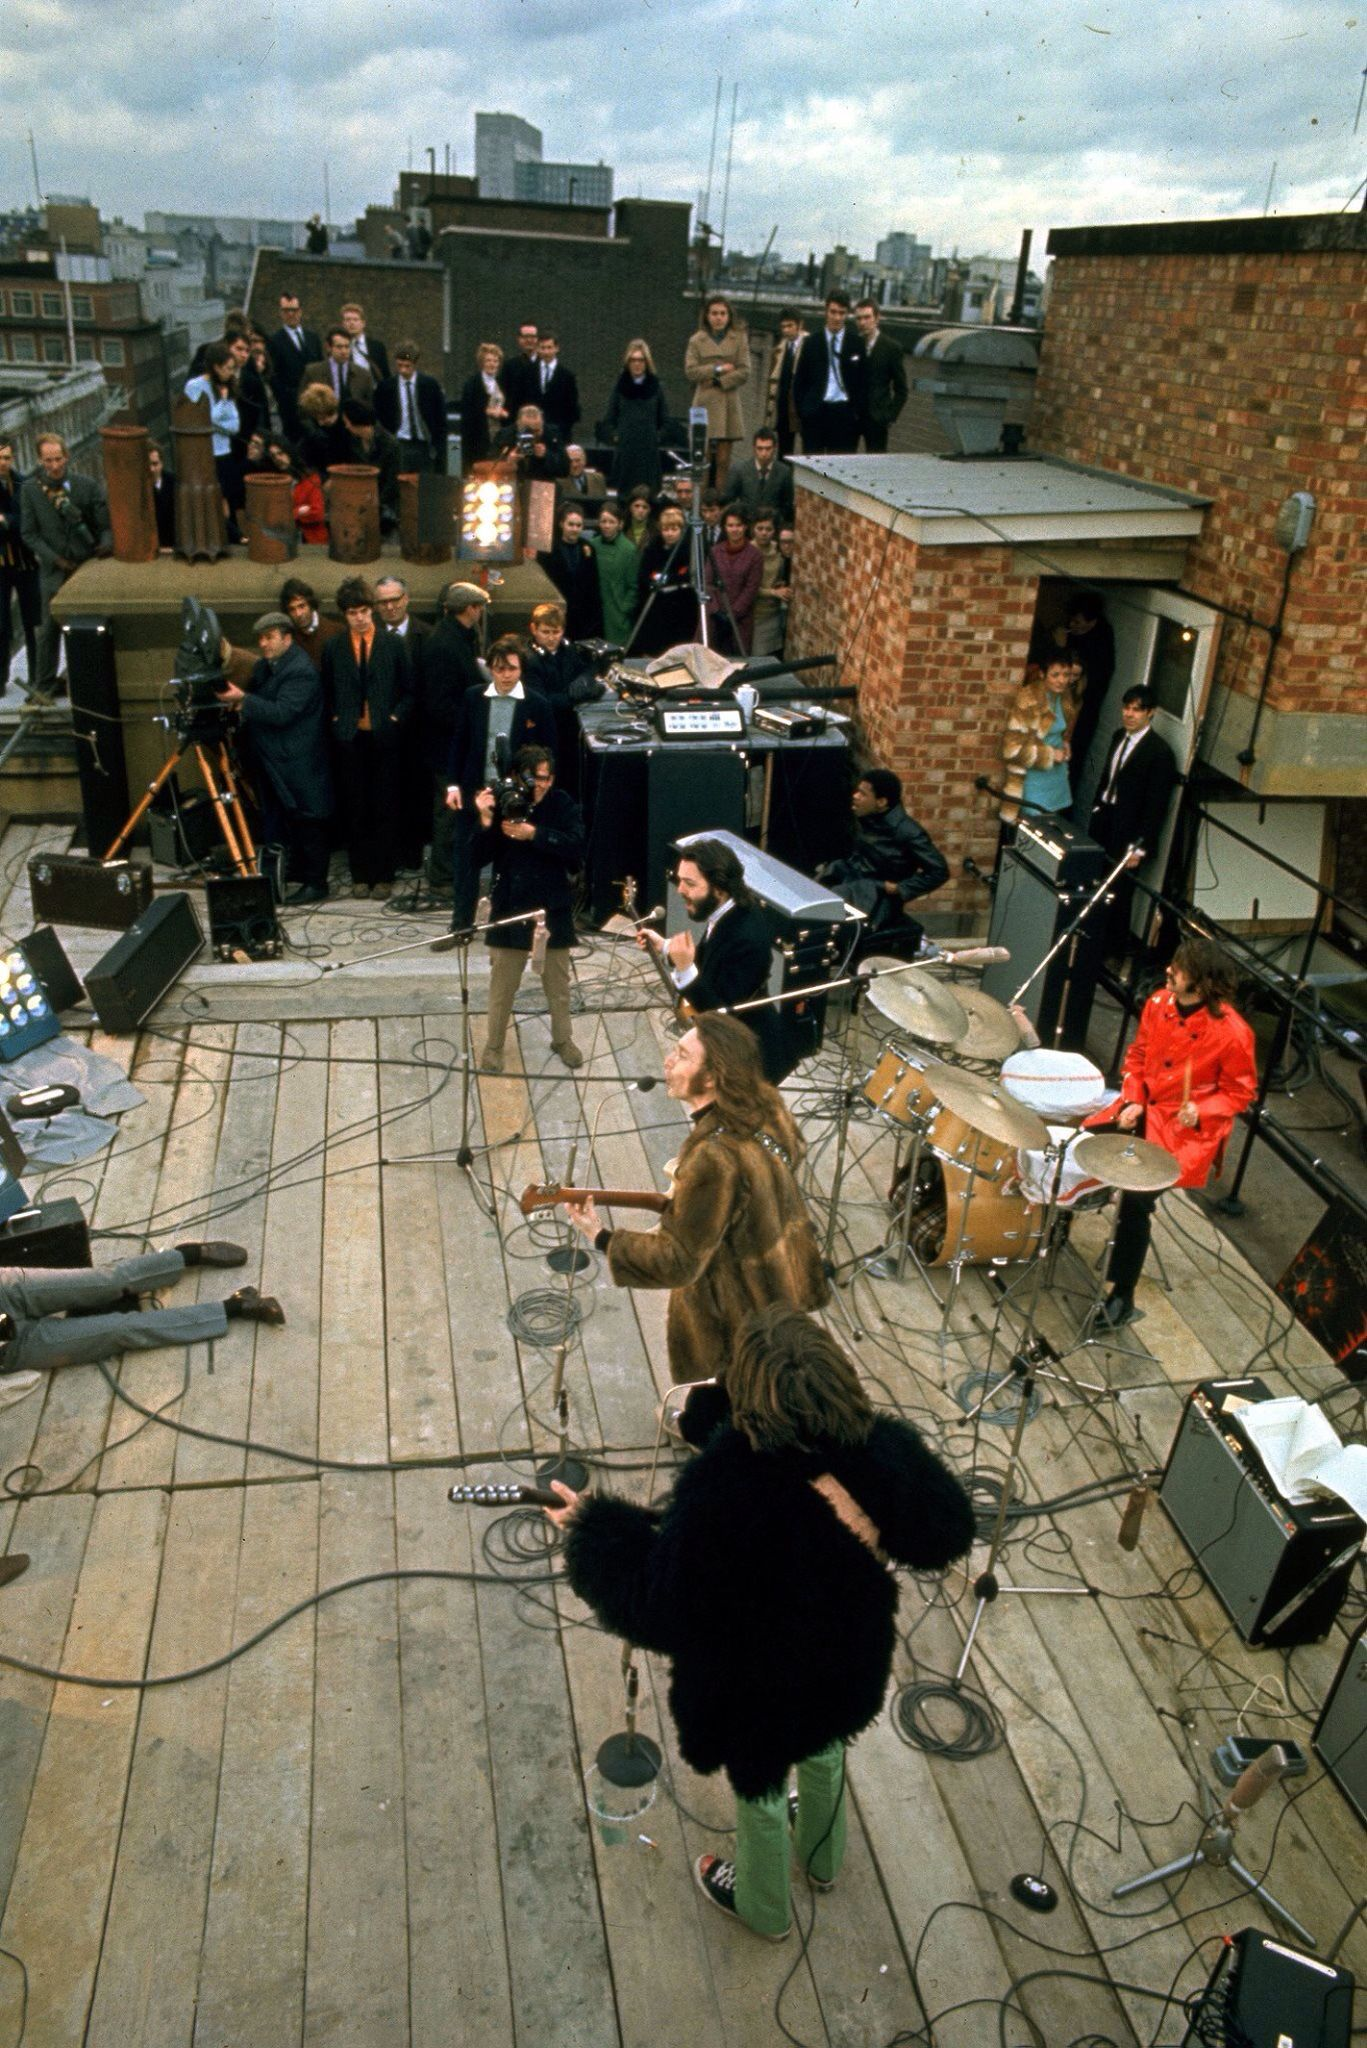 1969 - The Beatles, The Rooftop Concert, 30th January ...